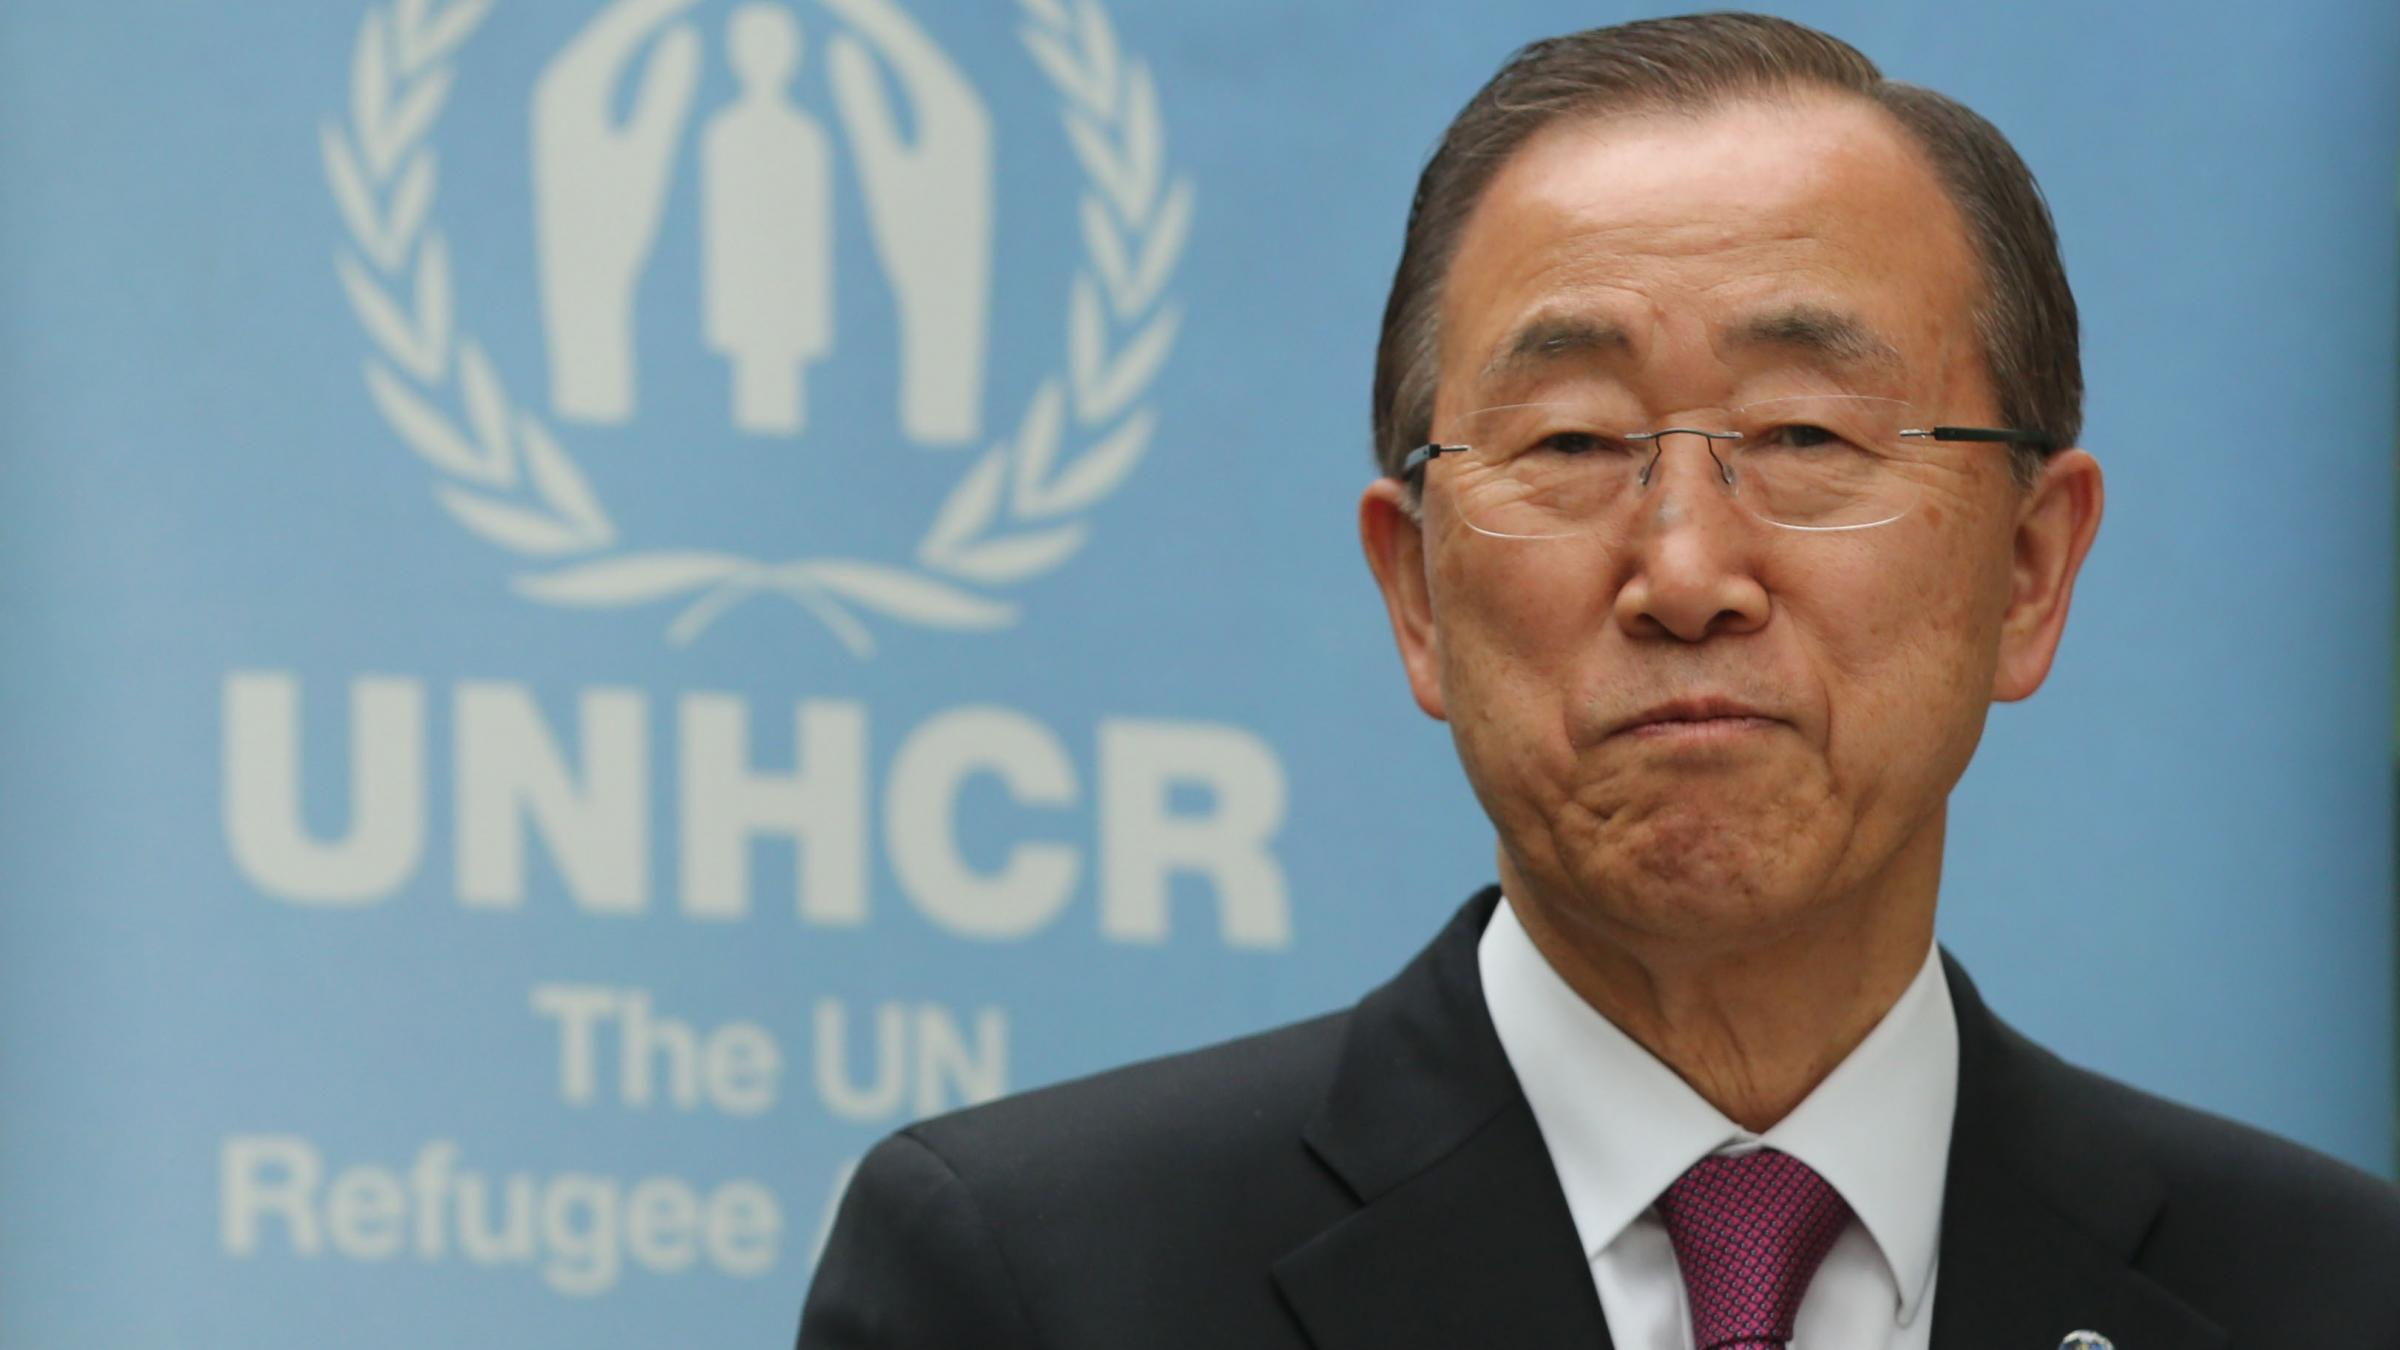 IOC Proposes Ban Ki-Moon to Preside Ethics Commission